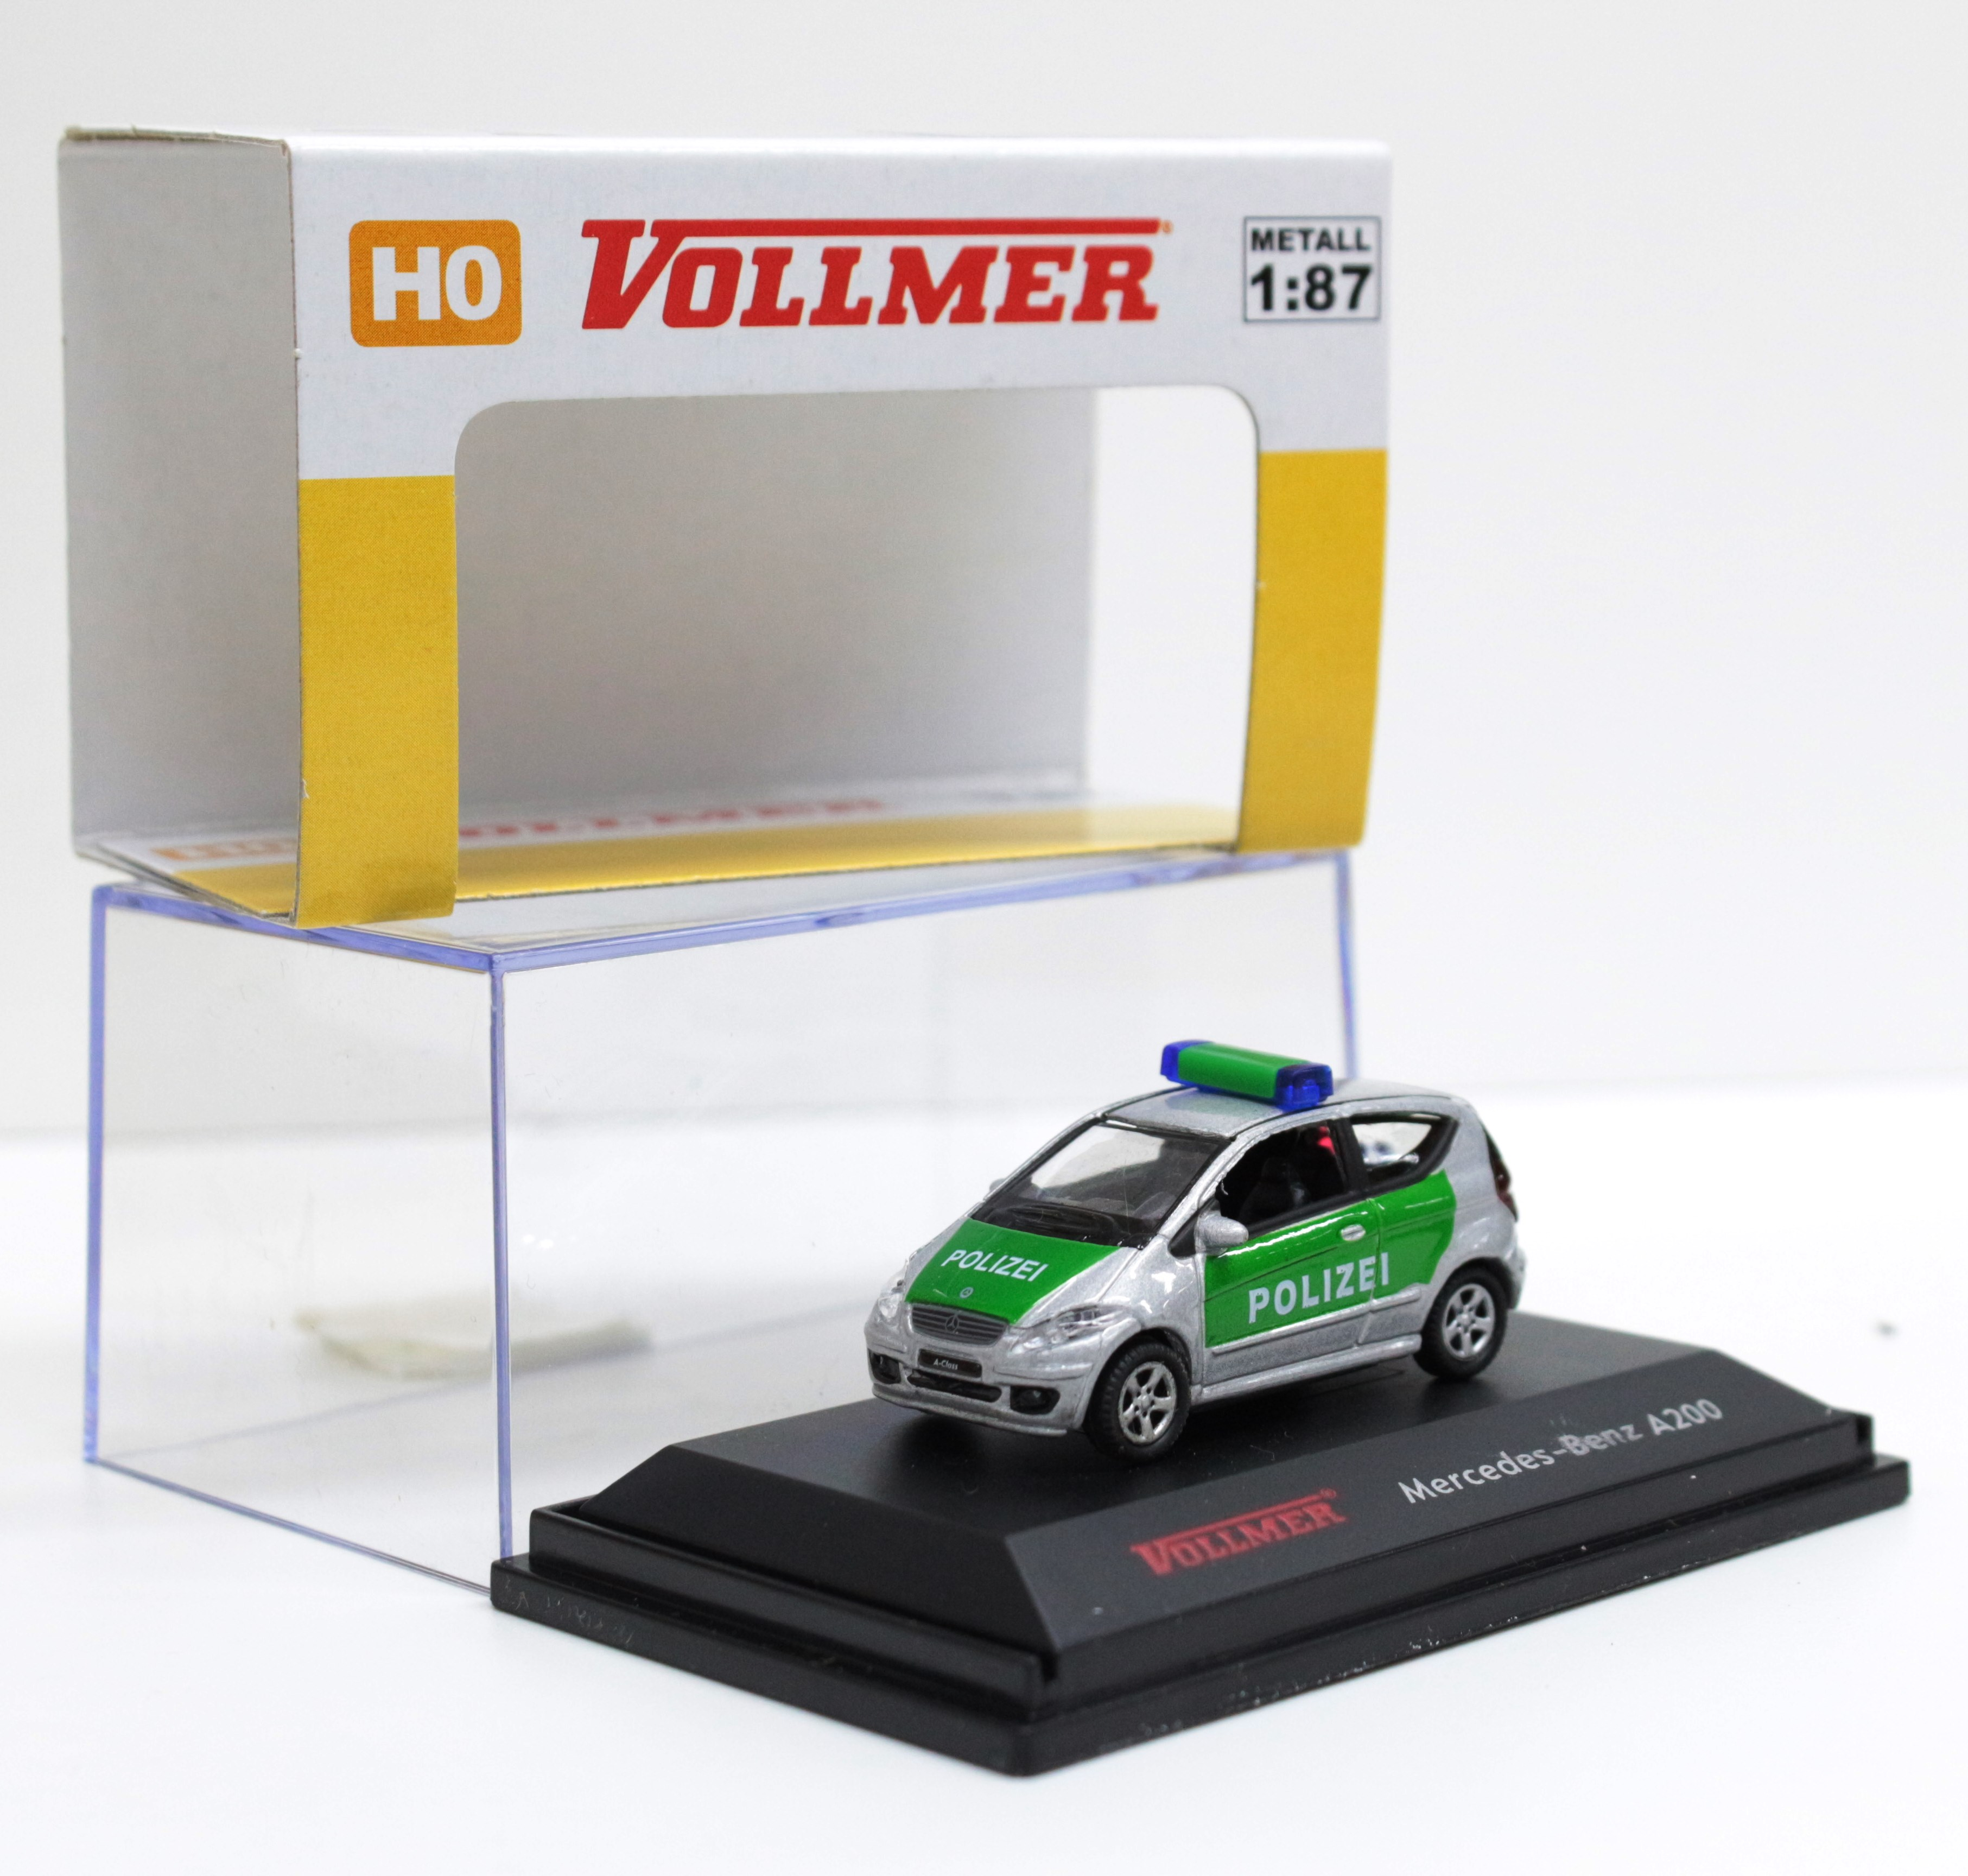 1606 Vollmer HO 1:87 Mercedes Benz SLK A200 polizia  in metallo